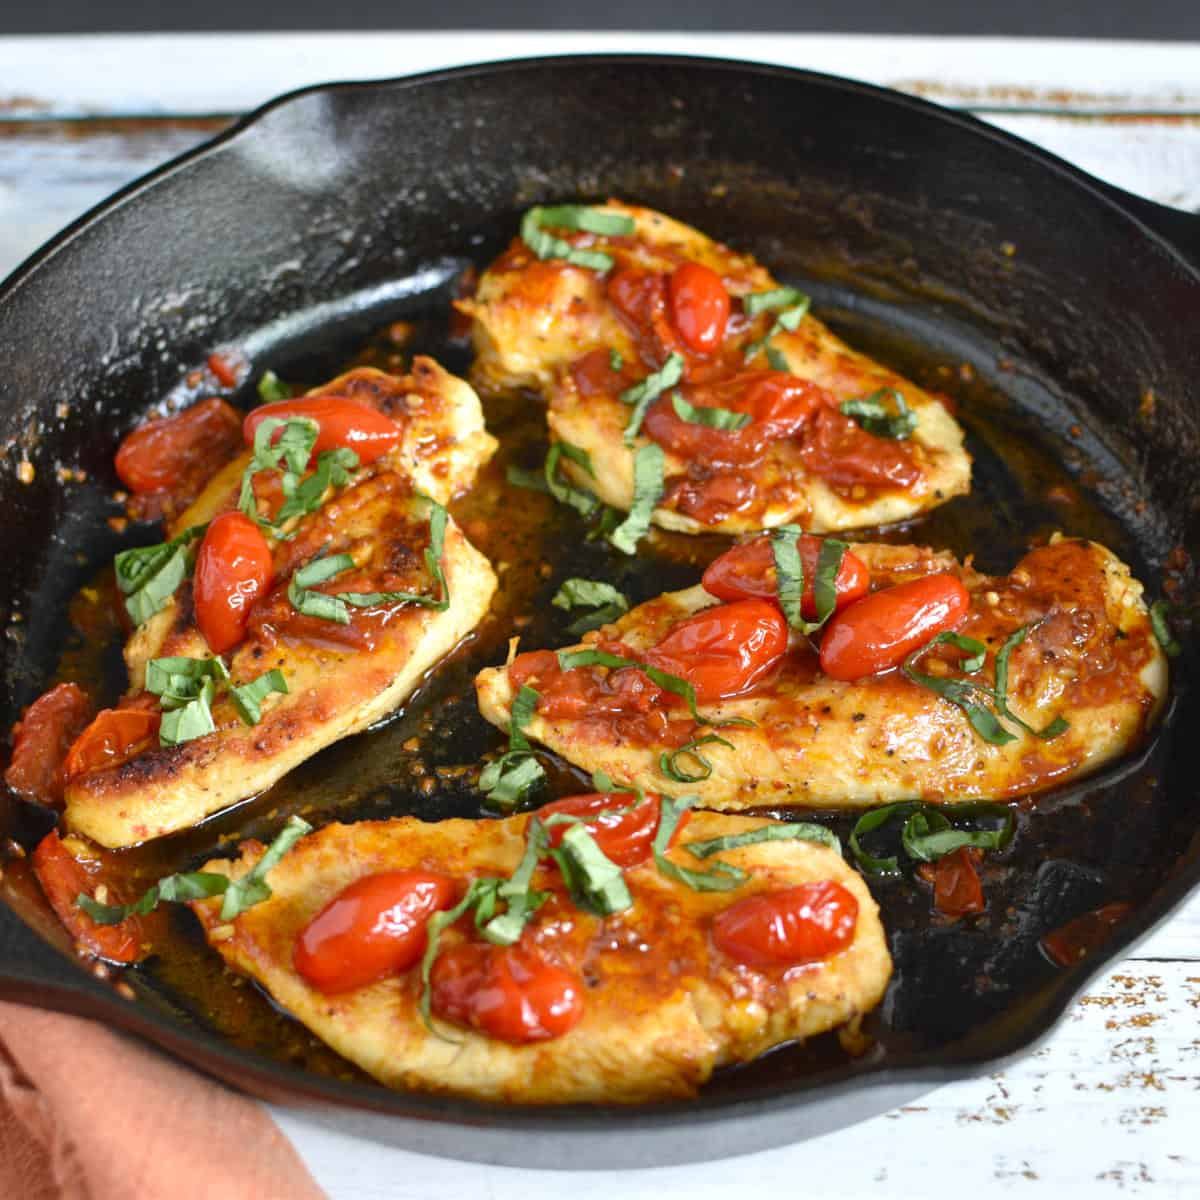 pan seared chicken breasts with tomatoes and basil in an iron skillet